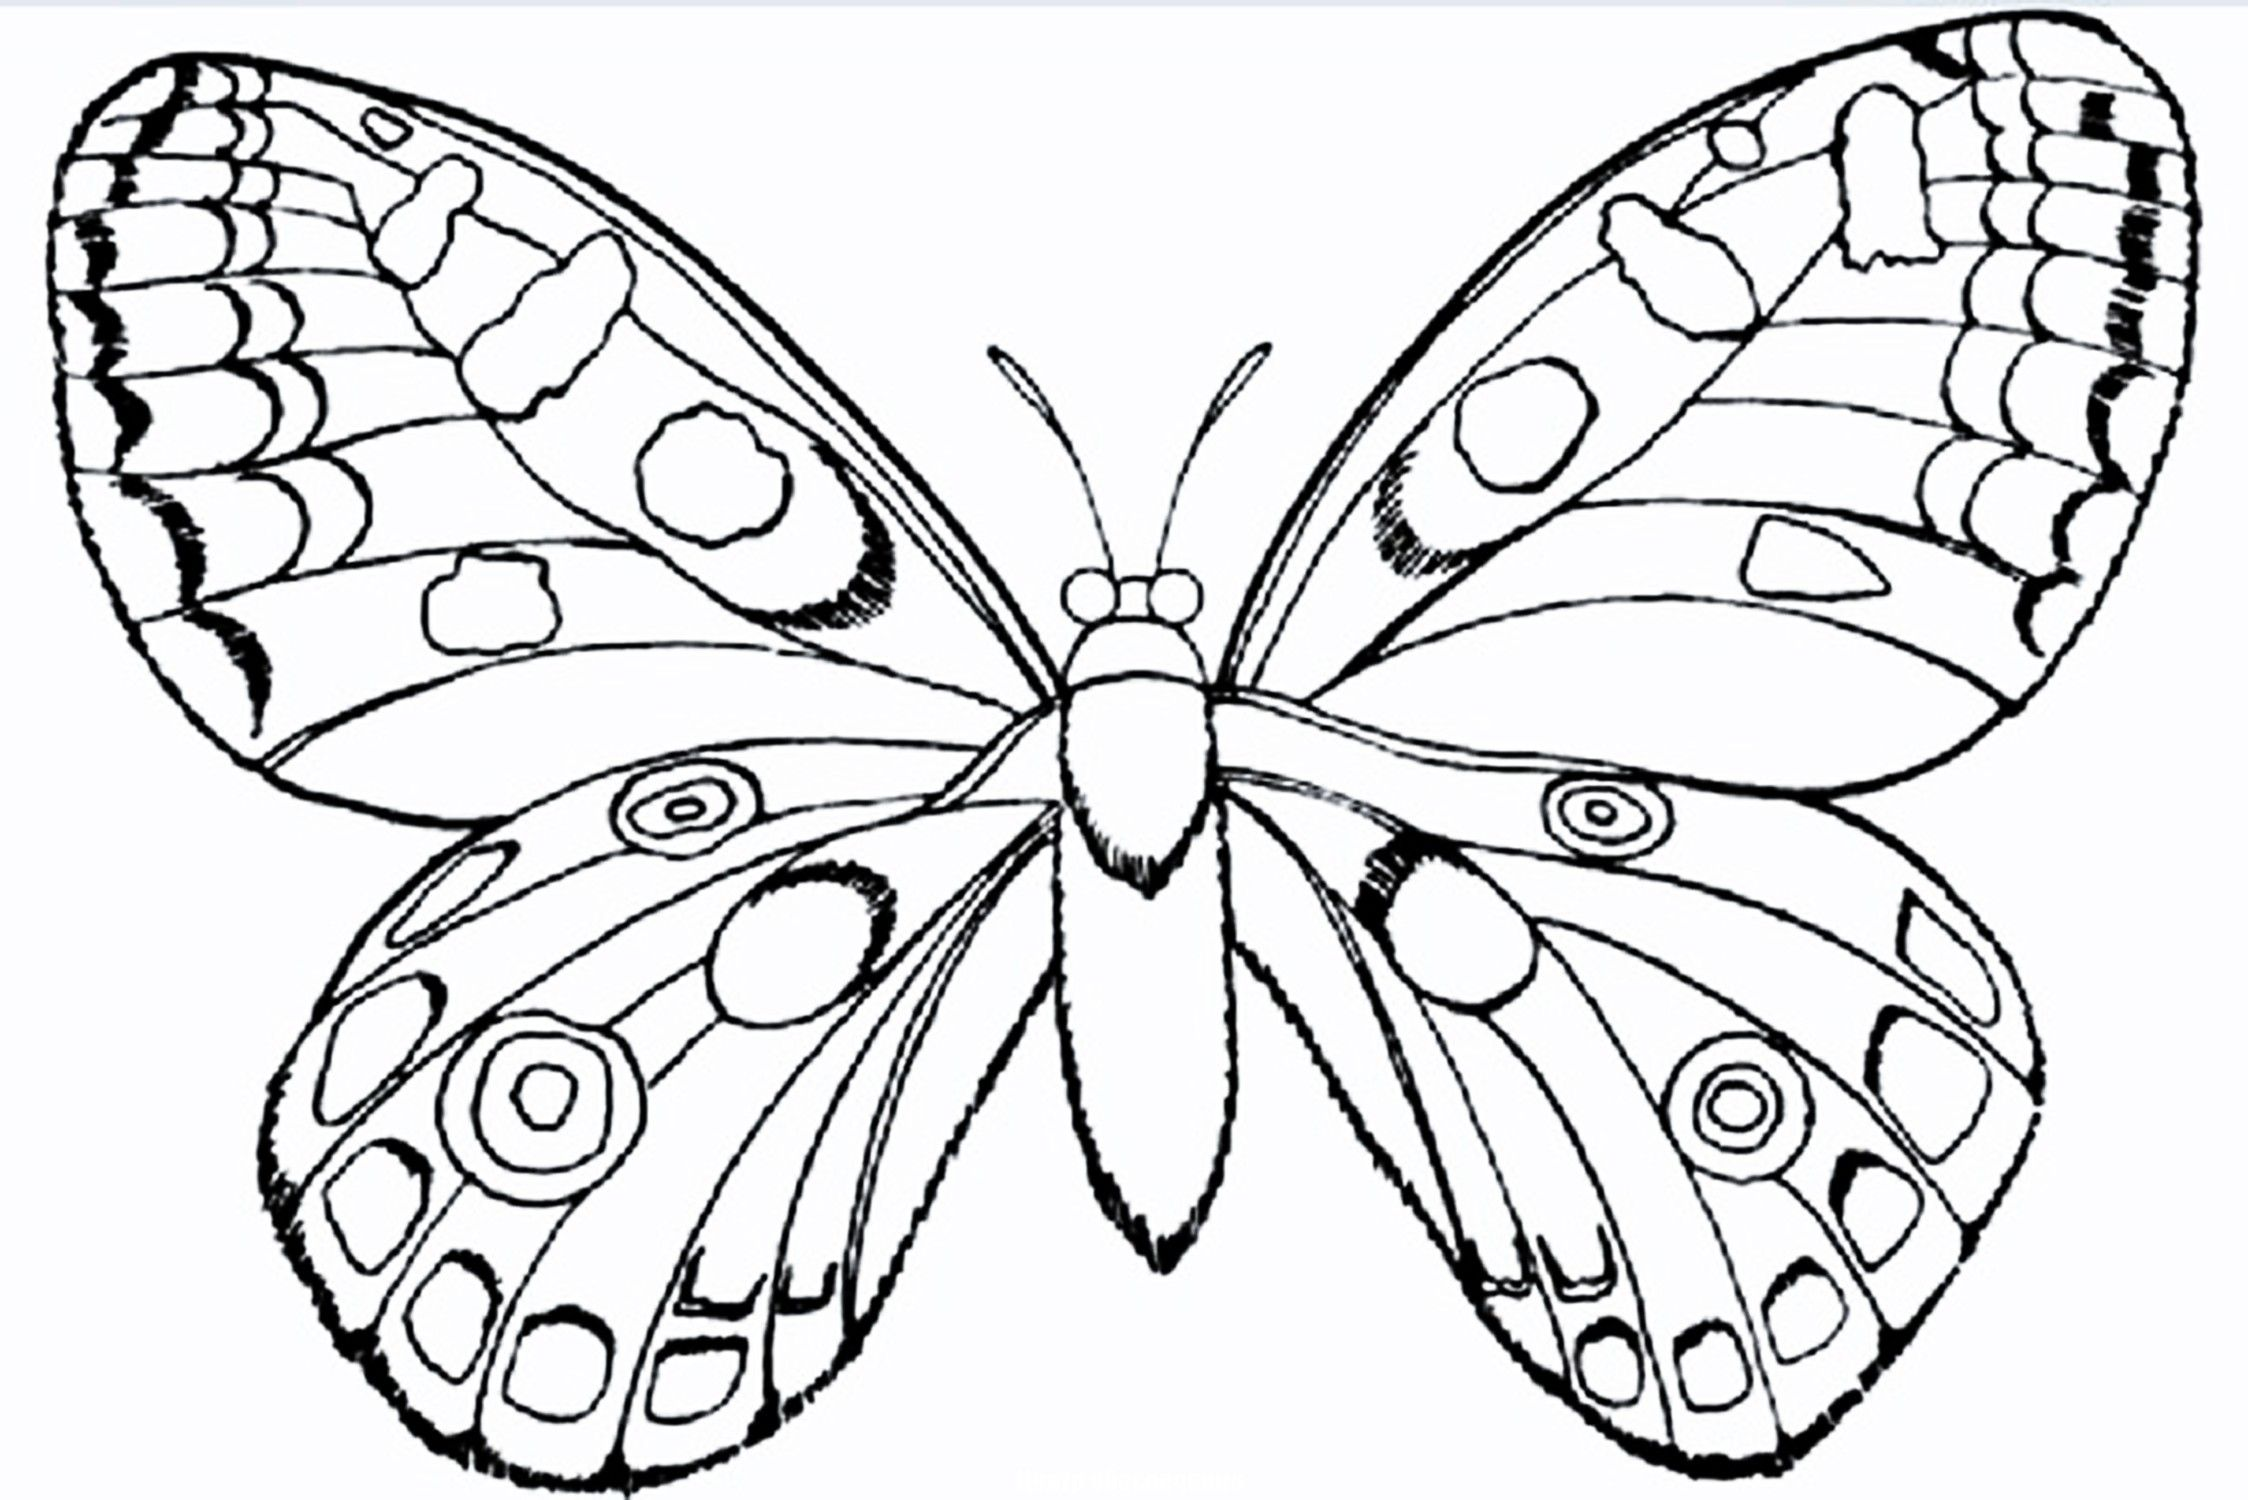 Bff Color Pages To Color Google Search Insect Coloring Pages Bug Coloring Pages Flower Coloring Pages